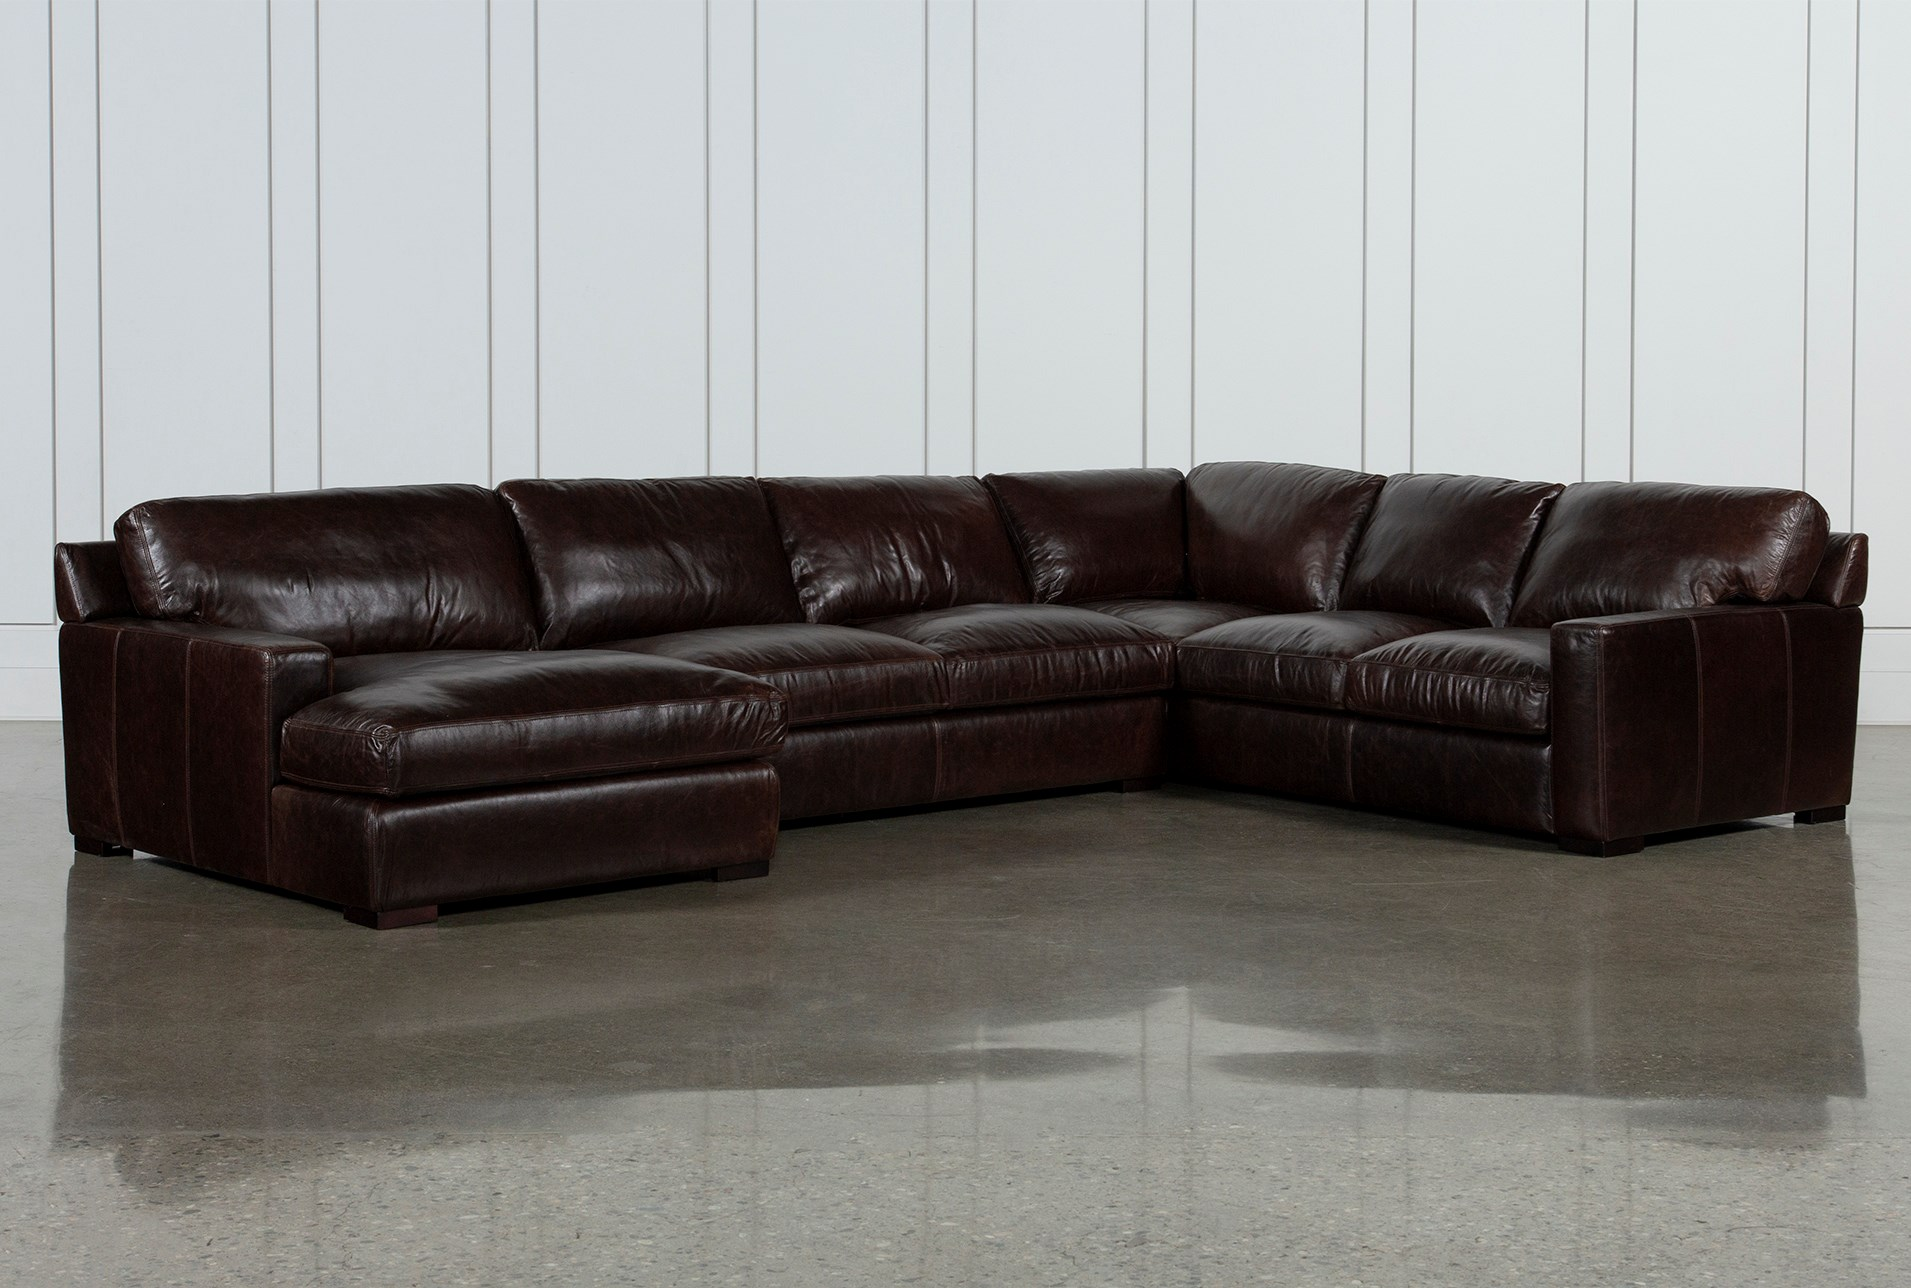 Incredible Stout Leather 3 Piece Sectional With Left Arm Facing Chaise Inzonedesignstudio Interior Chair Design Inzonedesignstudiocom